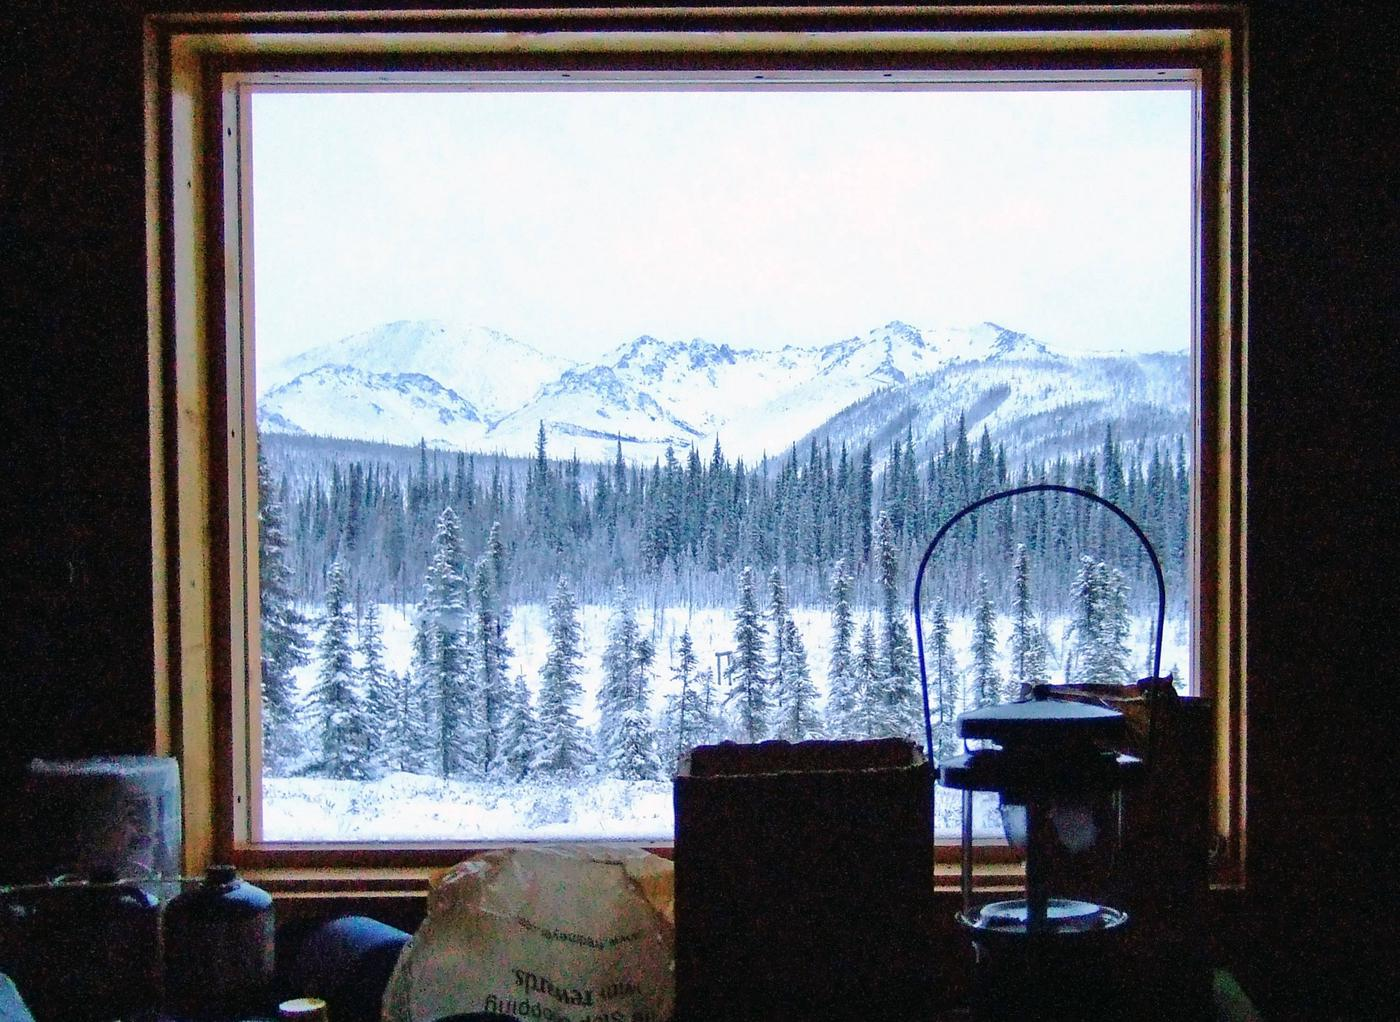 Window view with forest and snowy mountainsPicture window view from Wolf Run Cabin